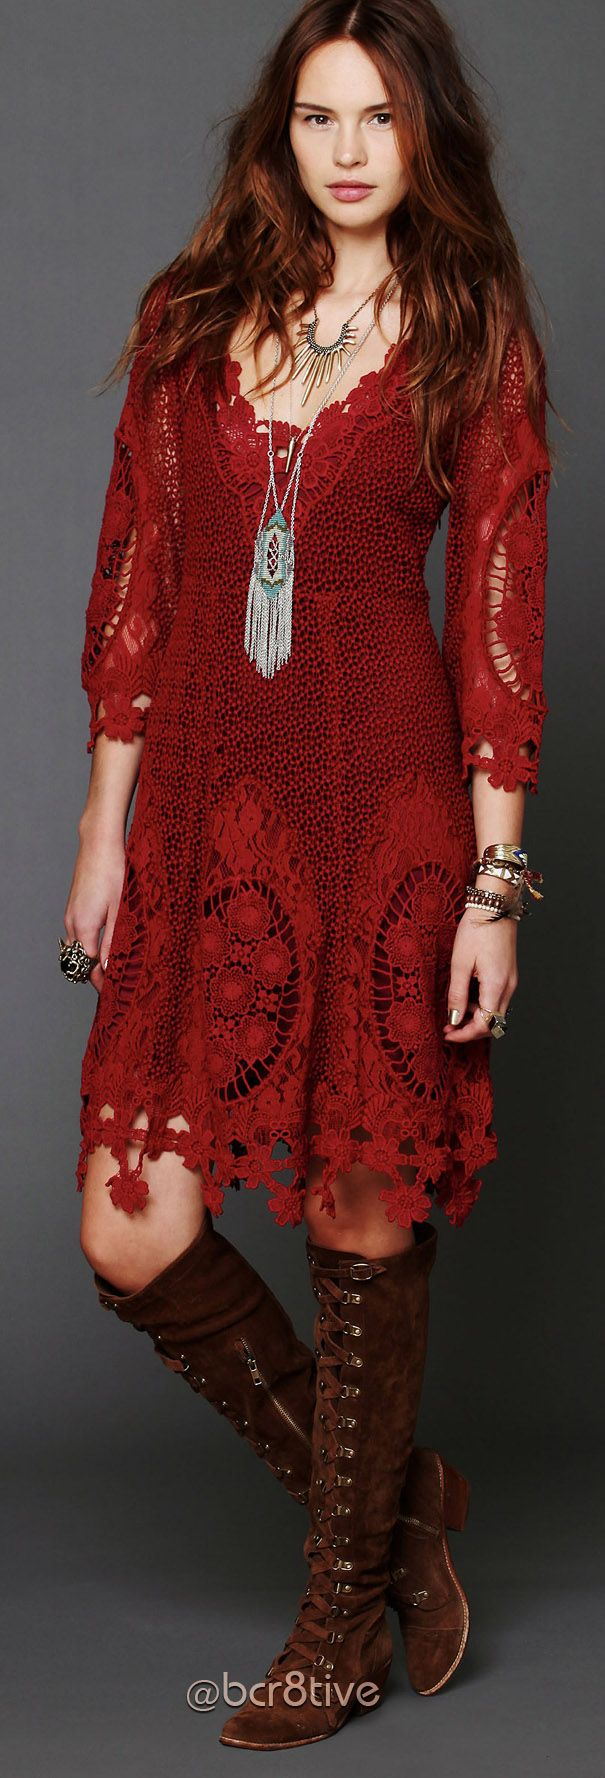 Free People - Mi Amore Lace Dress - Floral crochet dress with 3/4-length bell-sleeves✤